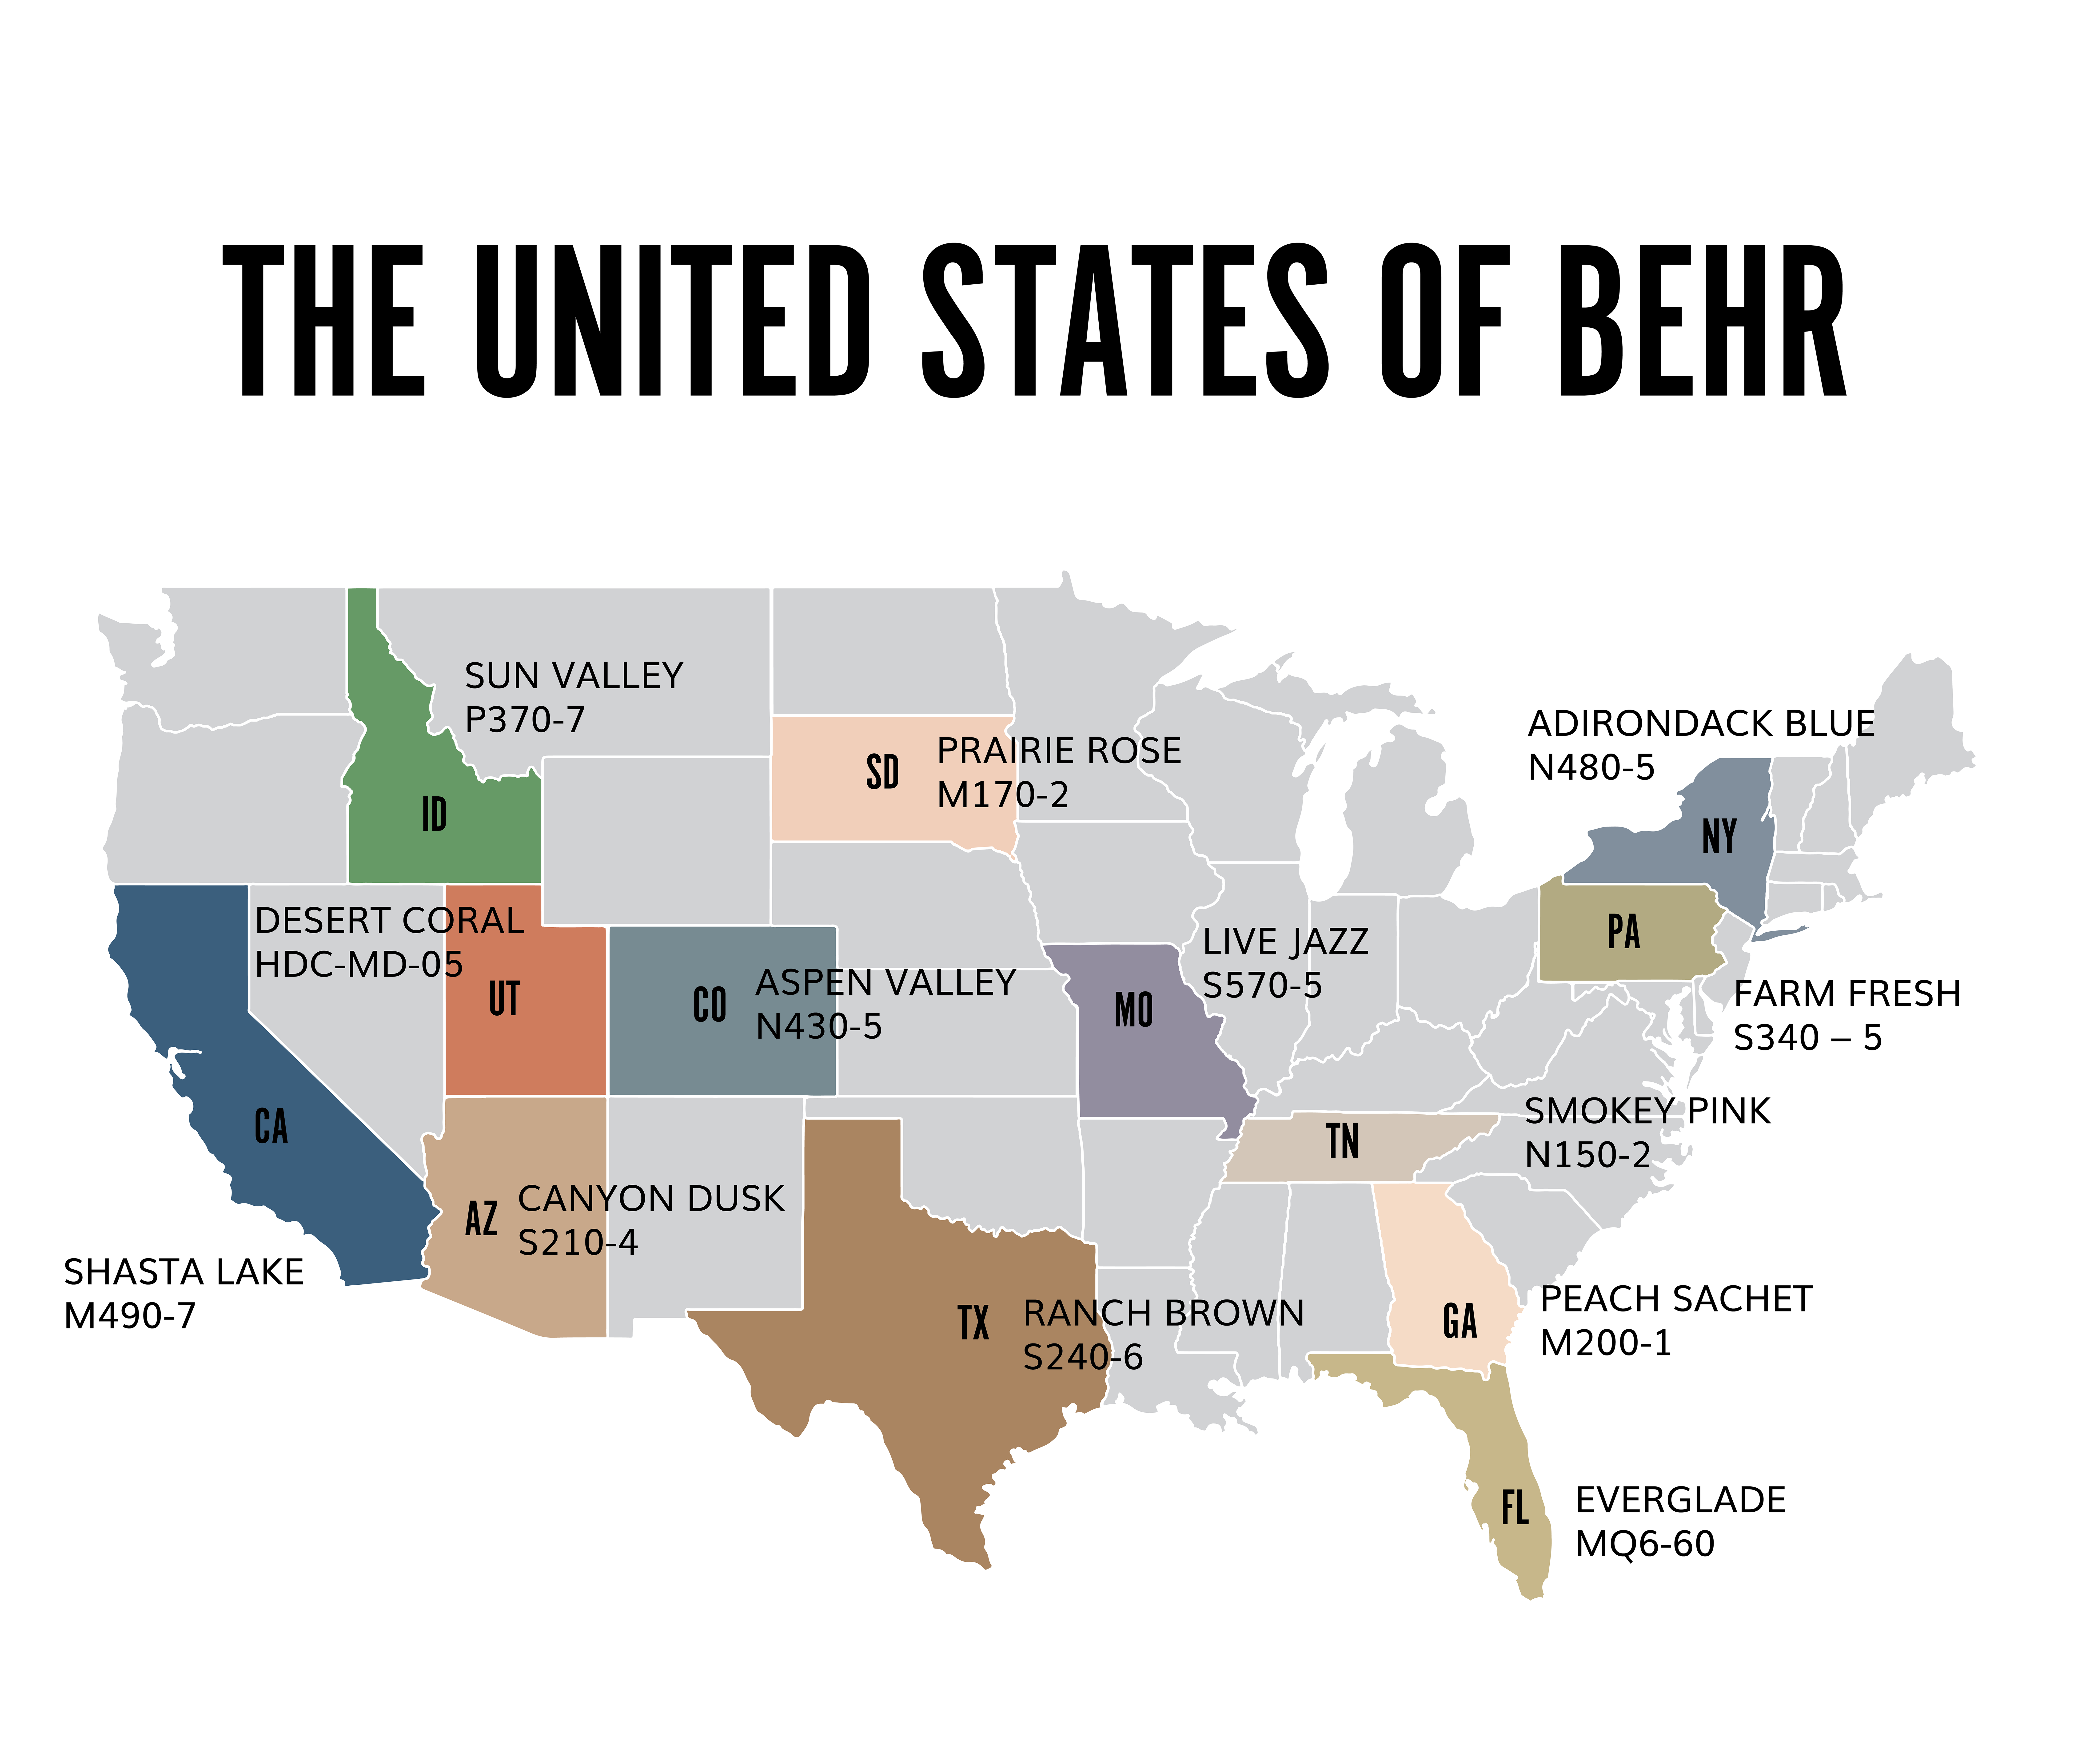 Behr USA Color Map